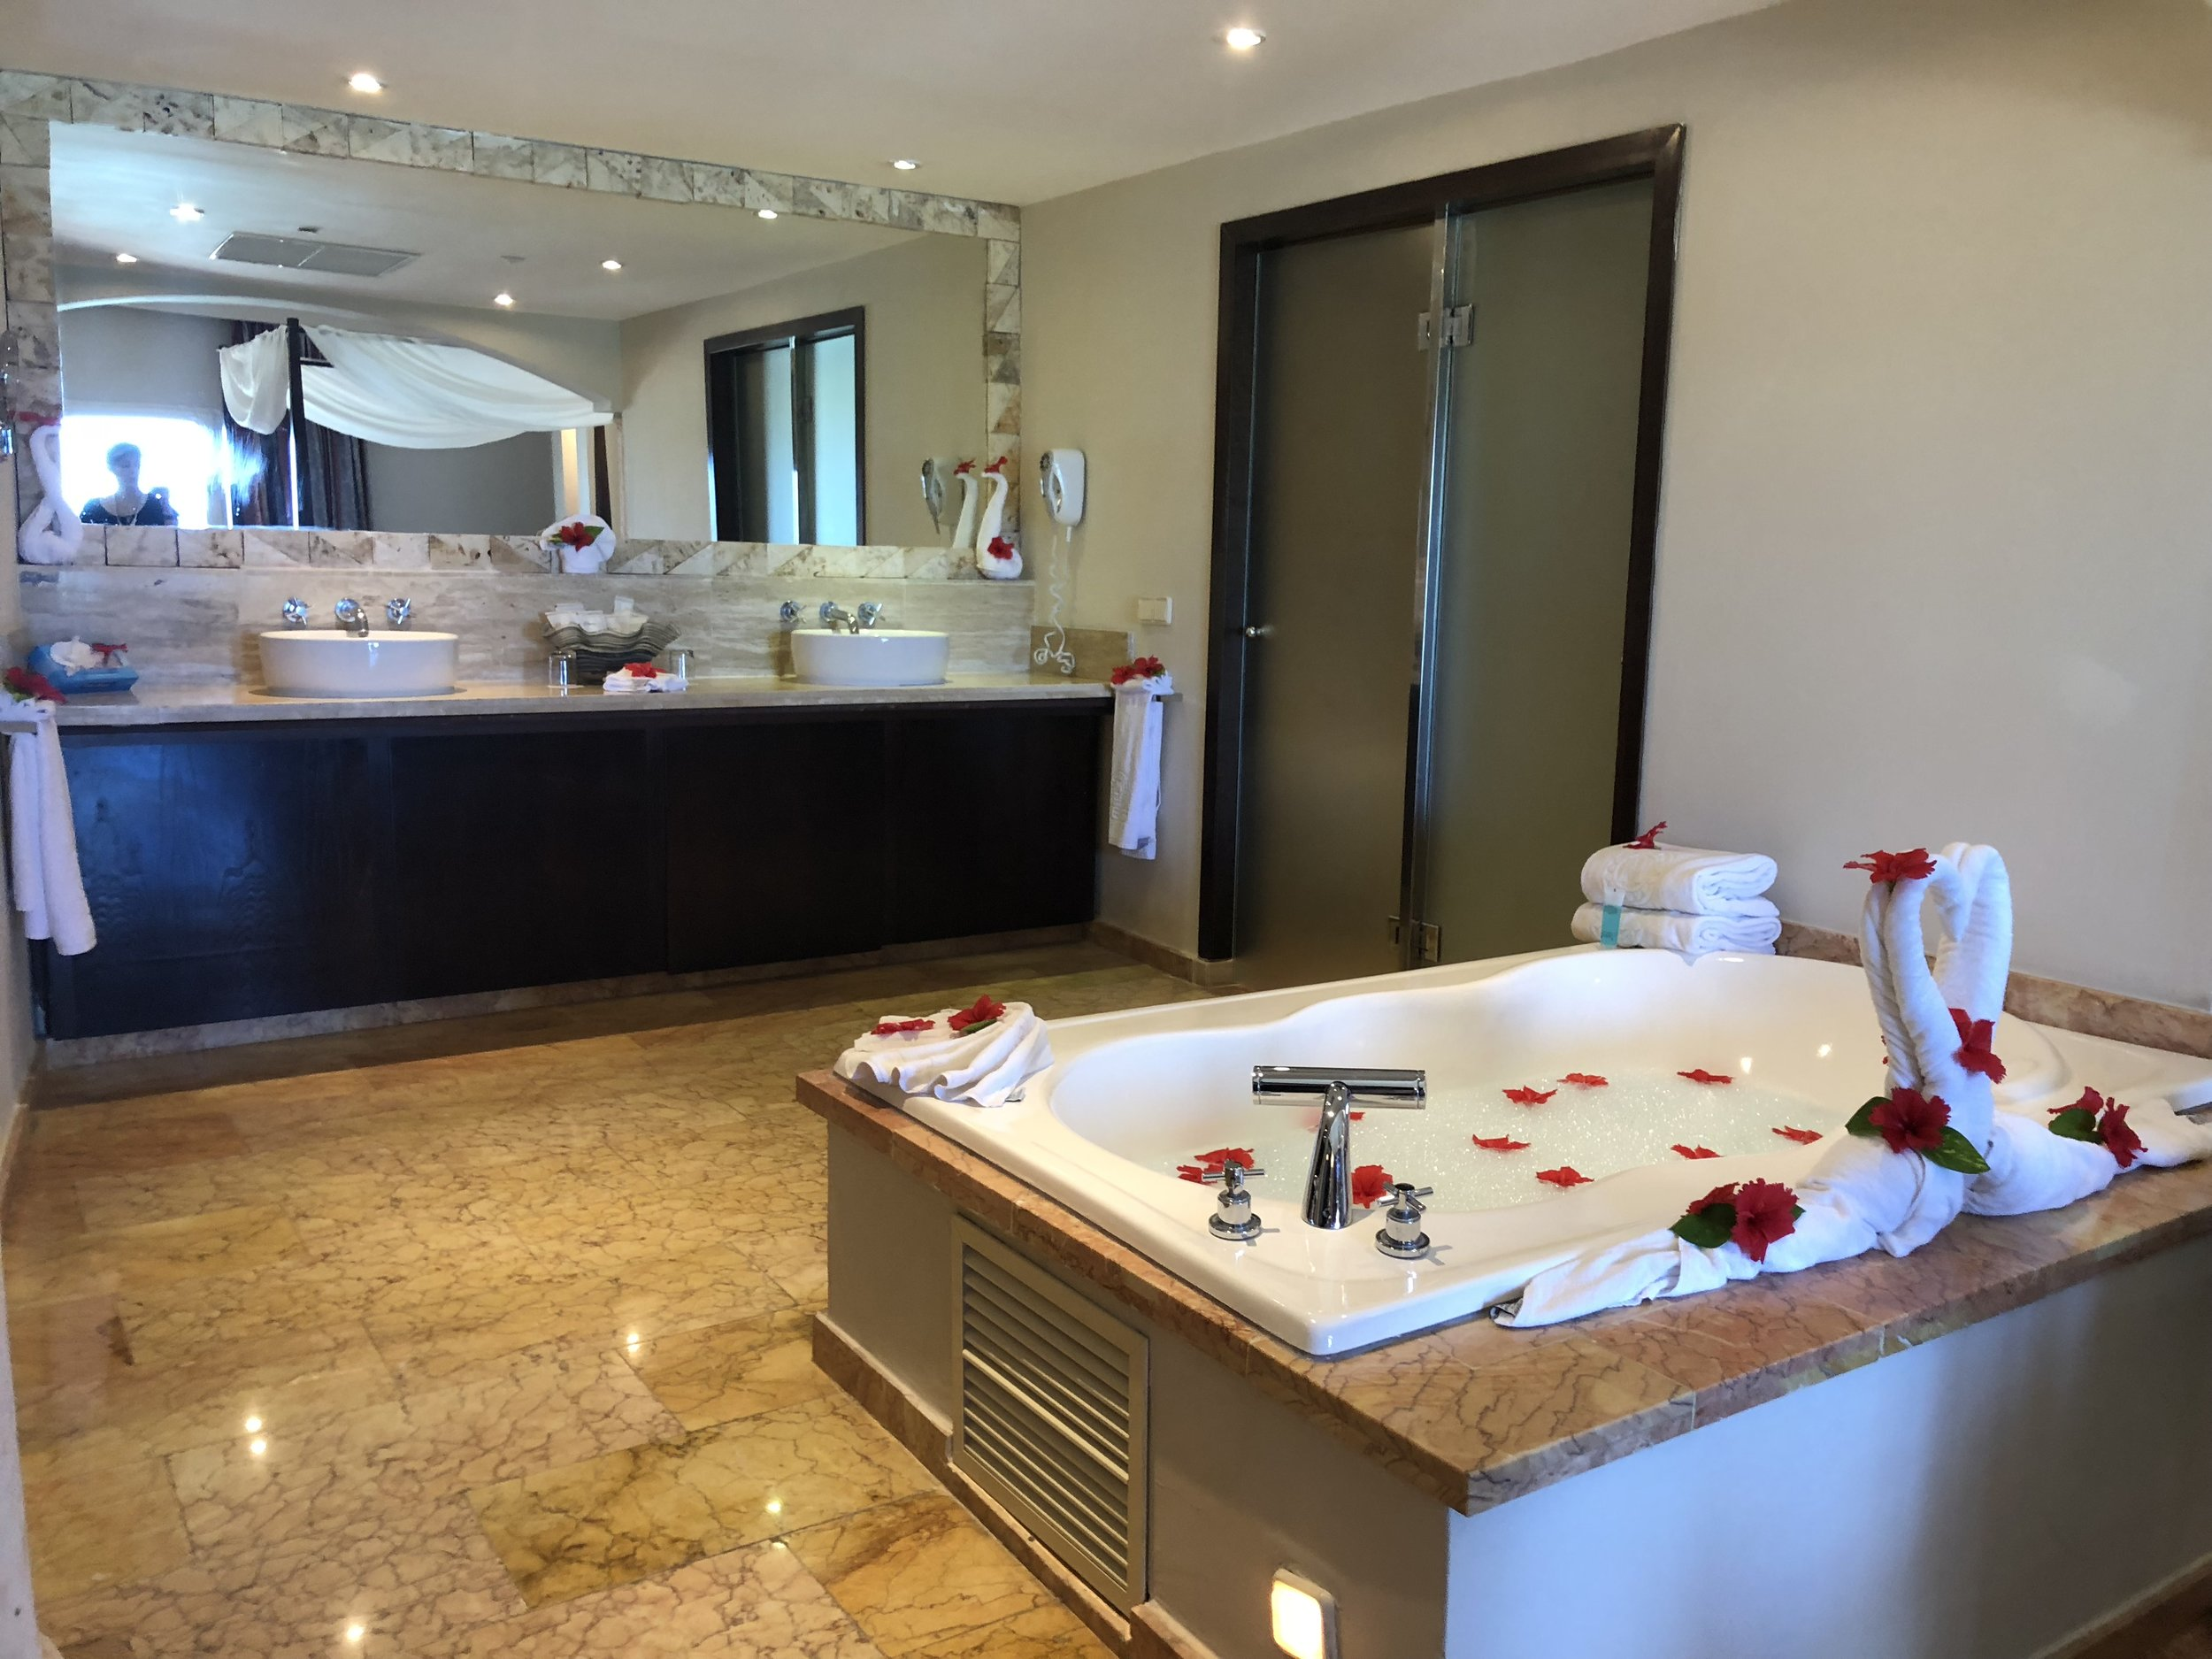 Room Type: Ocean View Suite  Jacuzzi in the centre of the room gives a spacious bathroom.